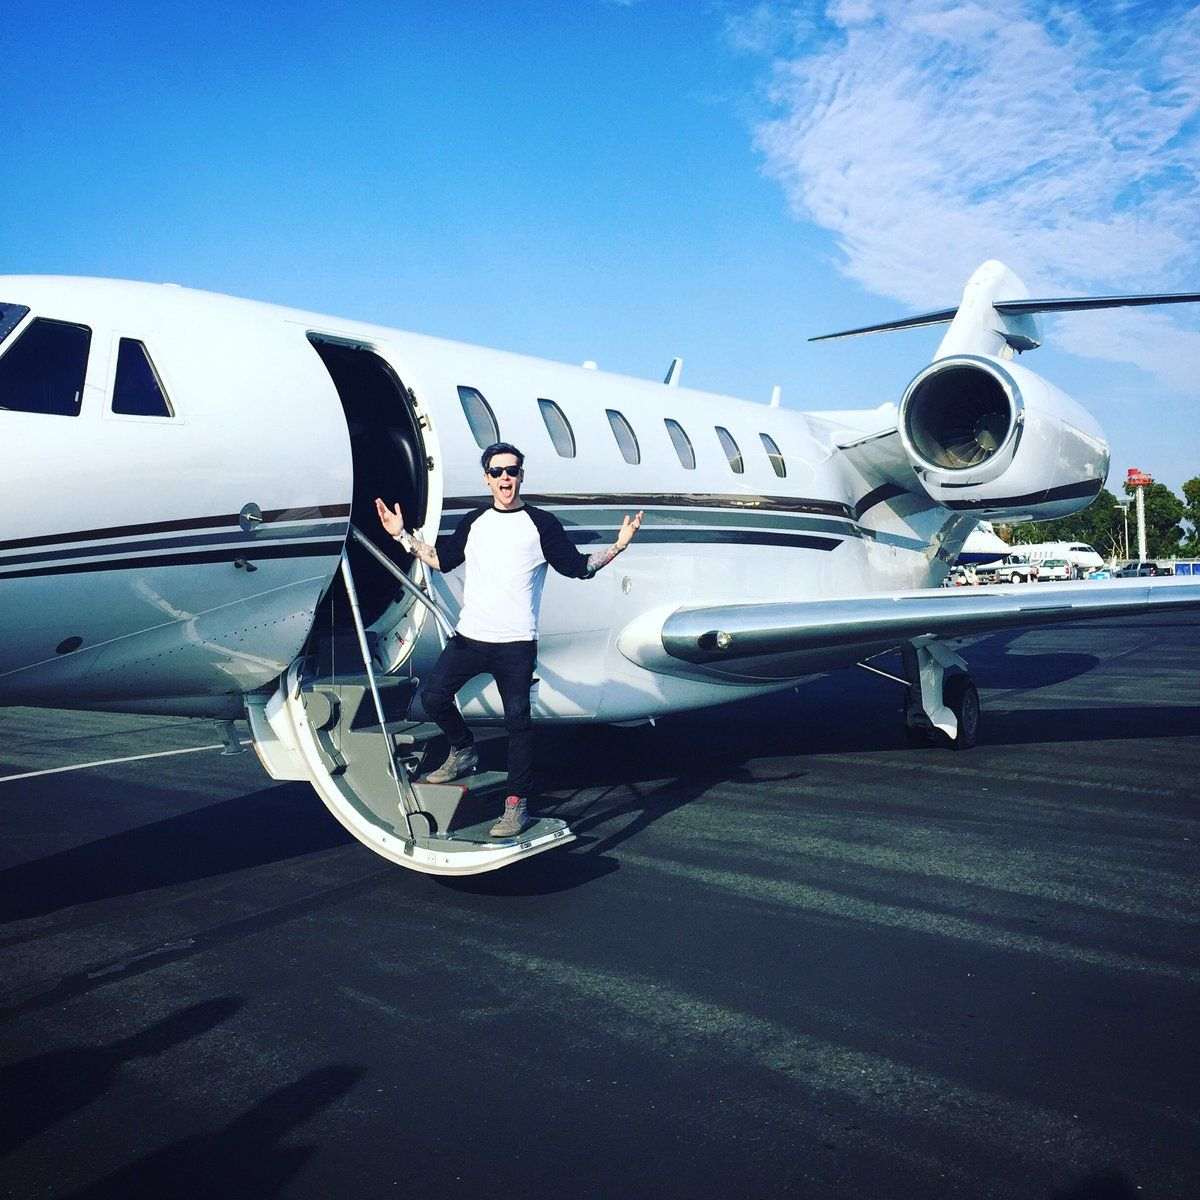 Phenom 300 cockpit phenom executive jet line leaders of innovation - Embraer Phenom 300 Follow ____tycoon____ Photo From Embraerexecutivejets Privatejets Planes Private Jets Pinterest Planes And Private